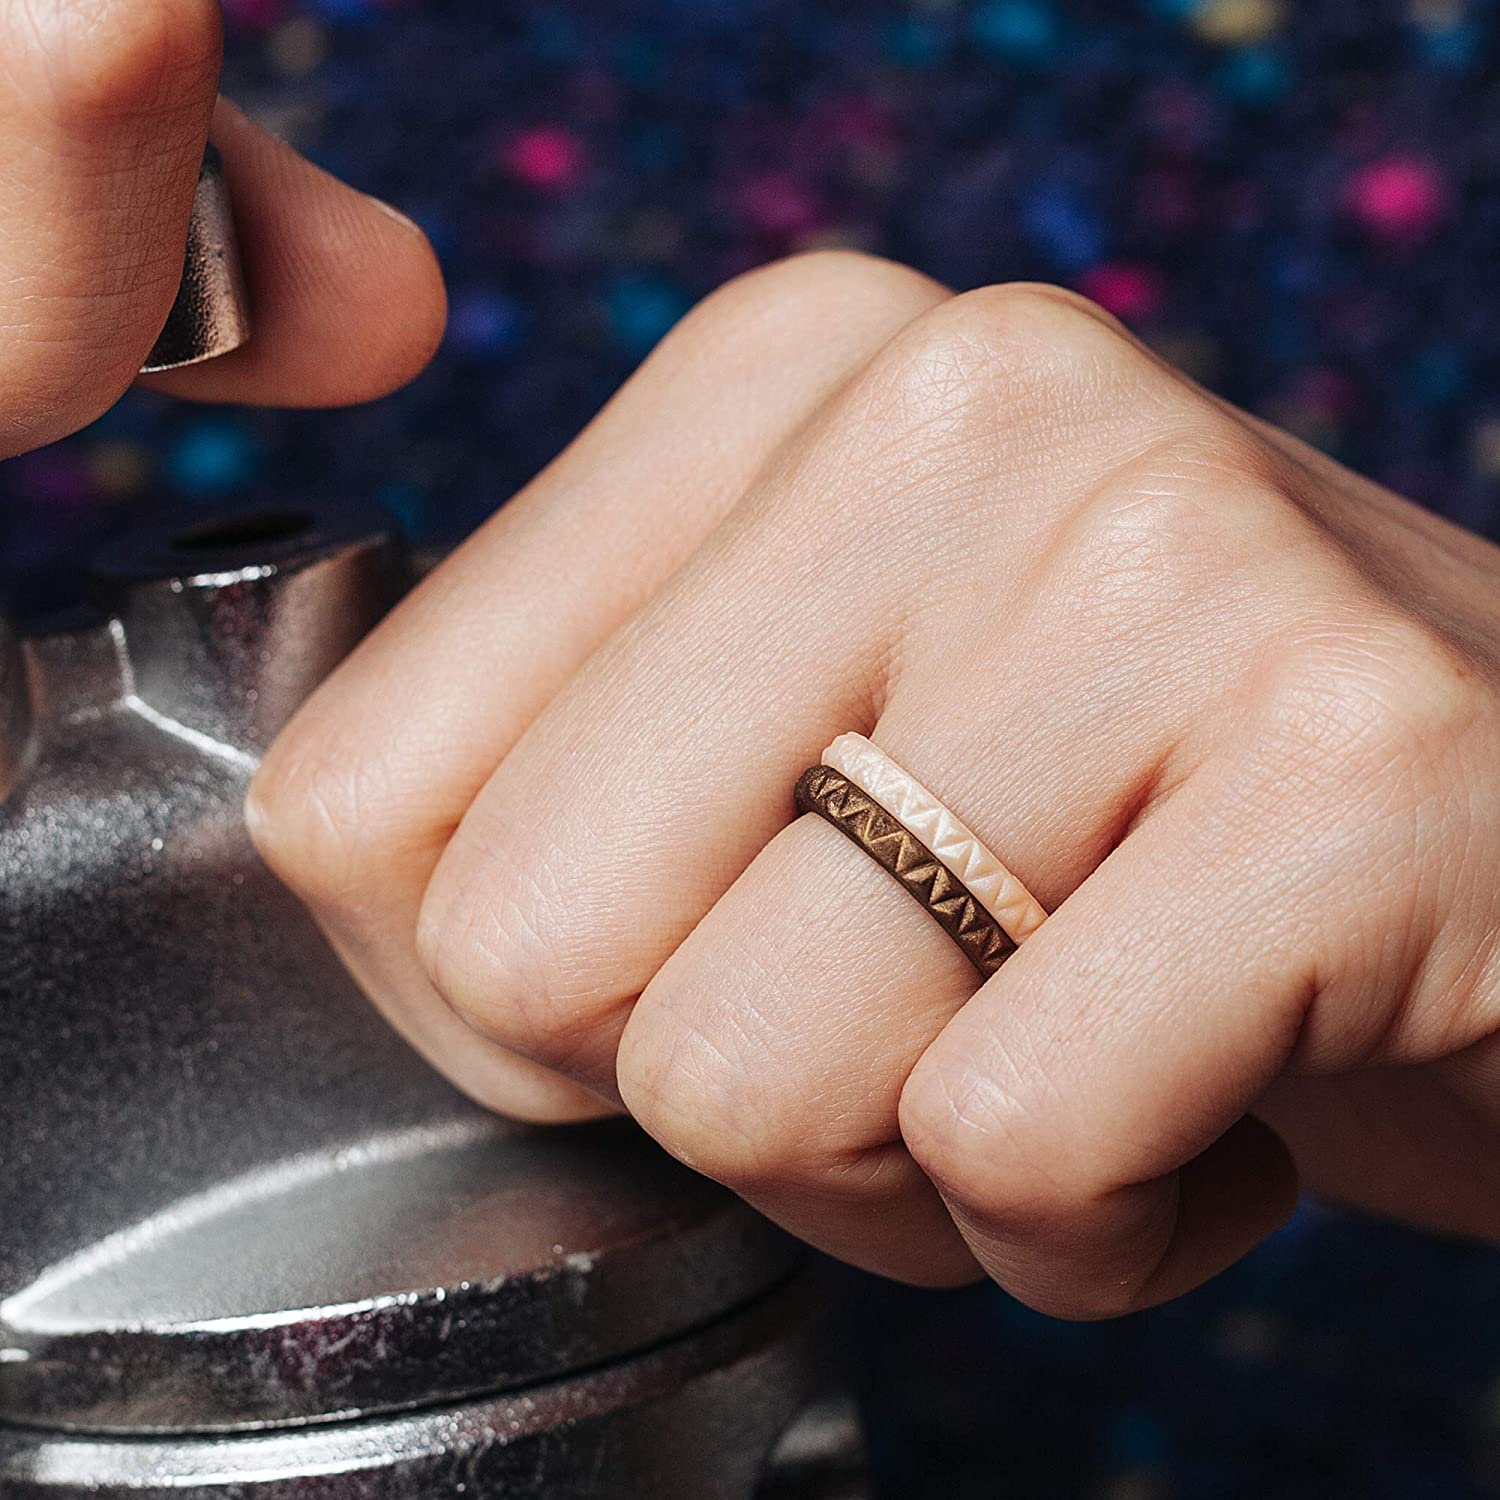 ThunderFit Womens Triangle Diamond Stackable Rings - 16 Rings / 12 Rings / 8 Rings / 4 Rings / 1 Ring - Thin Silicone Wedding Rings - 2.5mm Wide - 2mm Thick : Clothing